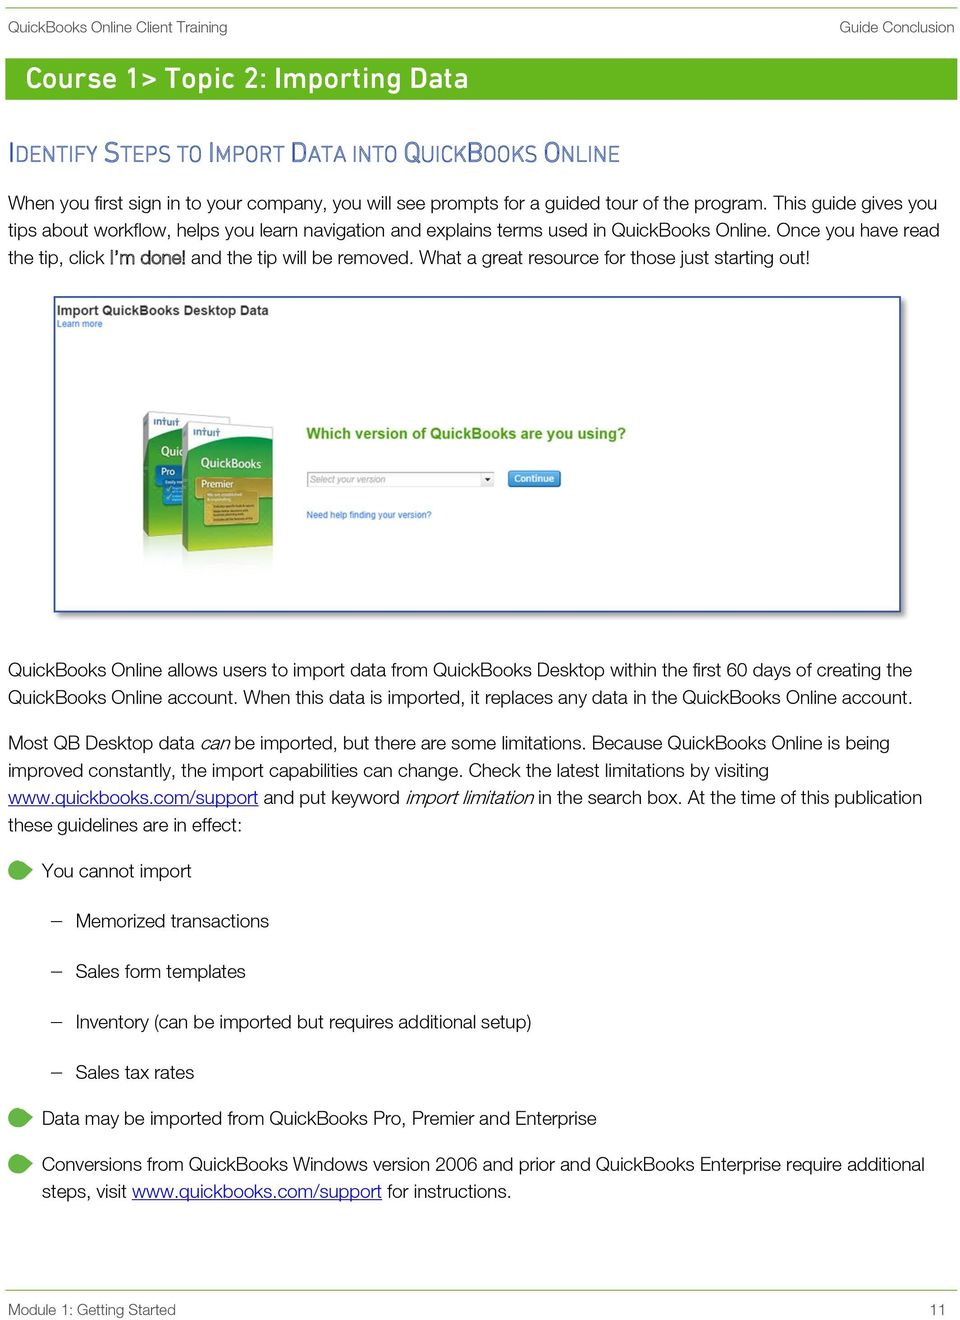 What a great resource for those just starting out! QuickBooks Online allows users to import data from QuickBooks Desktop within the first 60 days of creating the QuickBooks Online account.